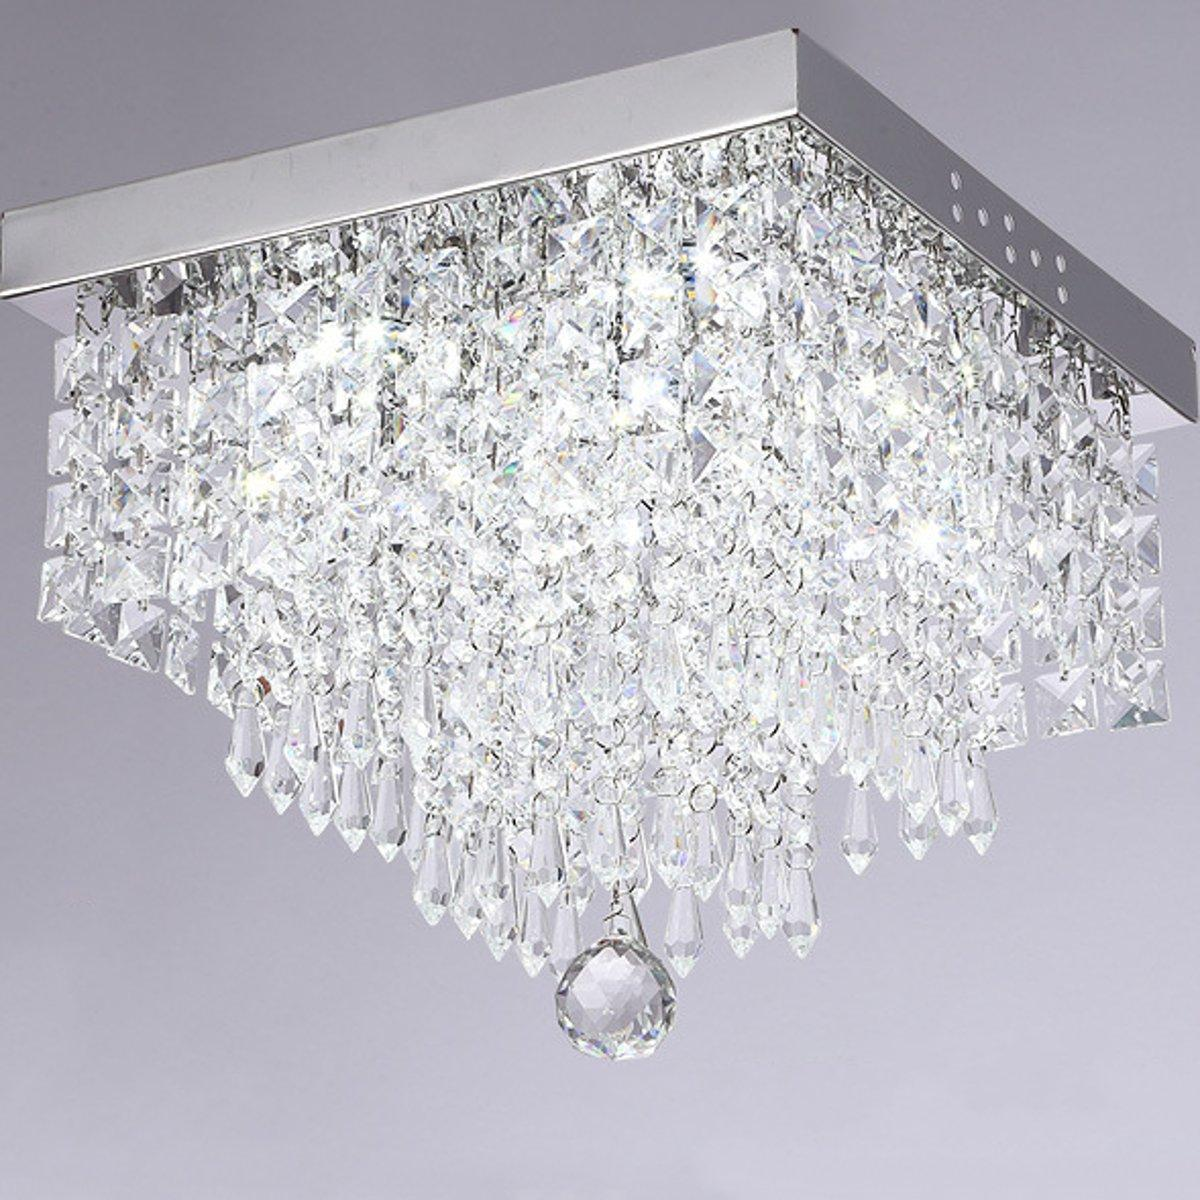 NEW Modern LED Crystal Ceiling Light Living Room Bedroom Lobby Pendant Lamp #30cm